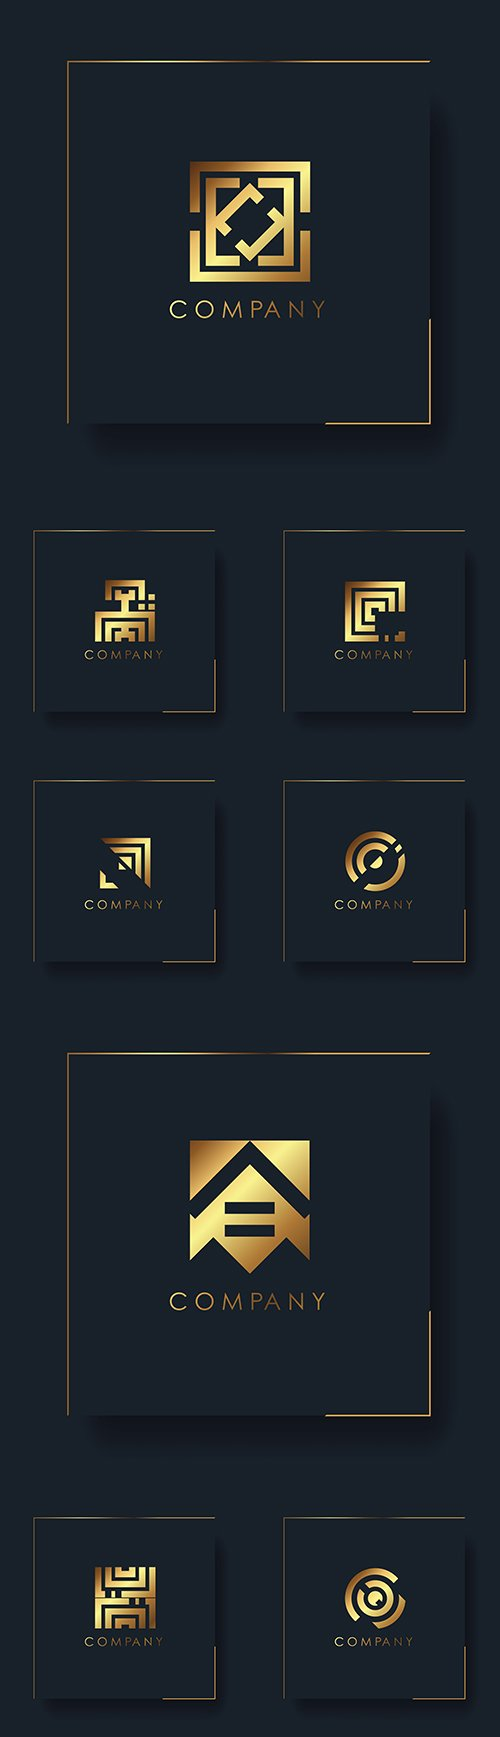 Abstract gold geometric logo company design